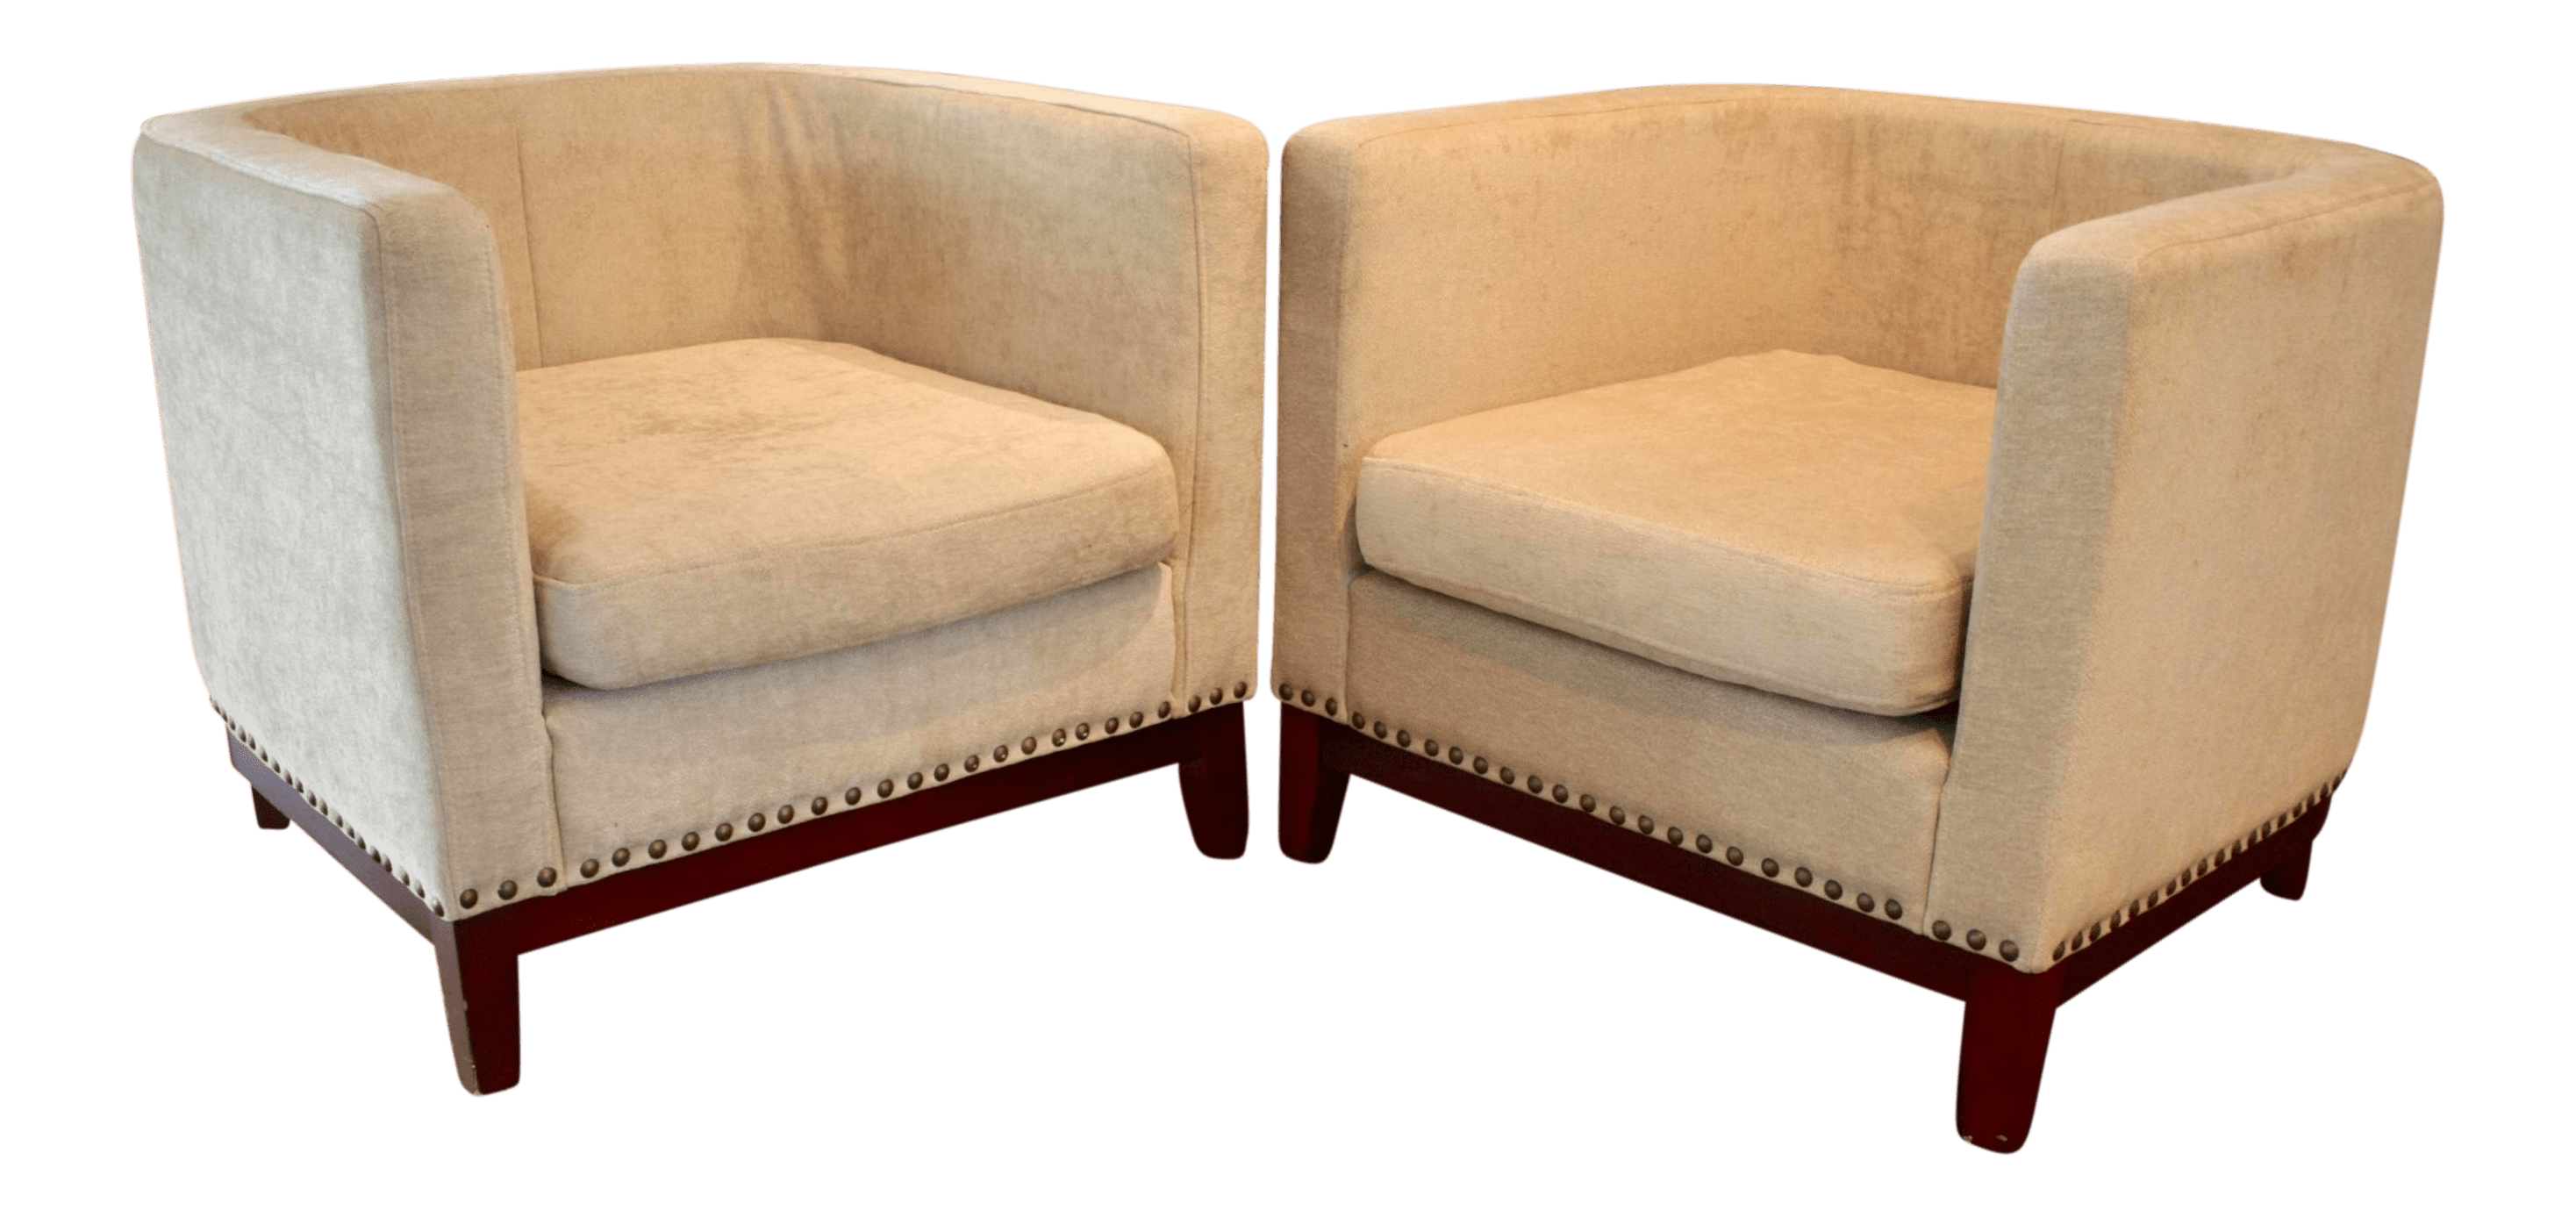 Curved Lounges Curved Lounge Chairs A Pair Chairish